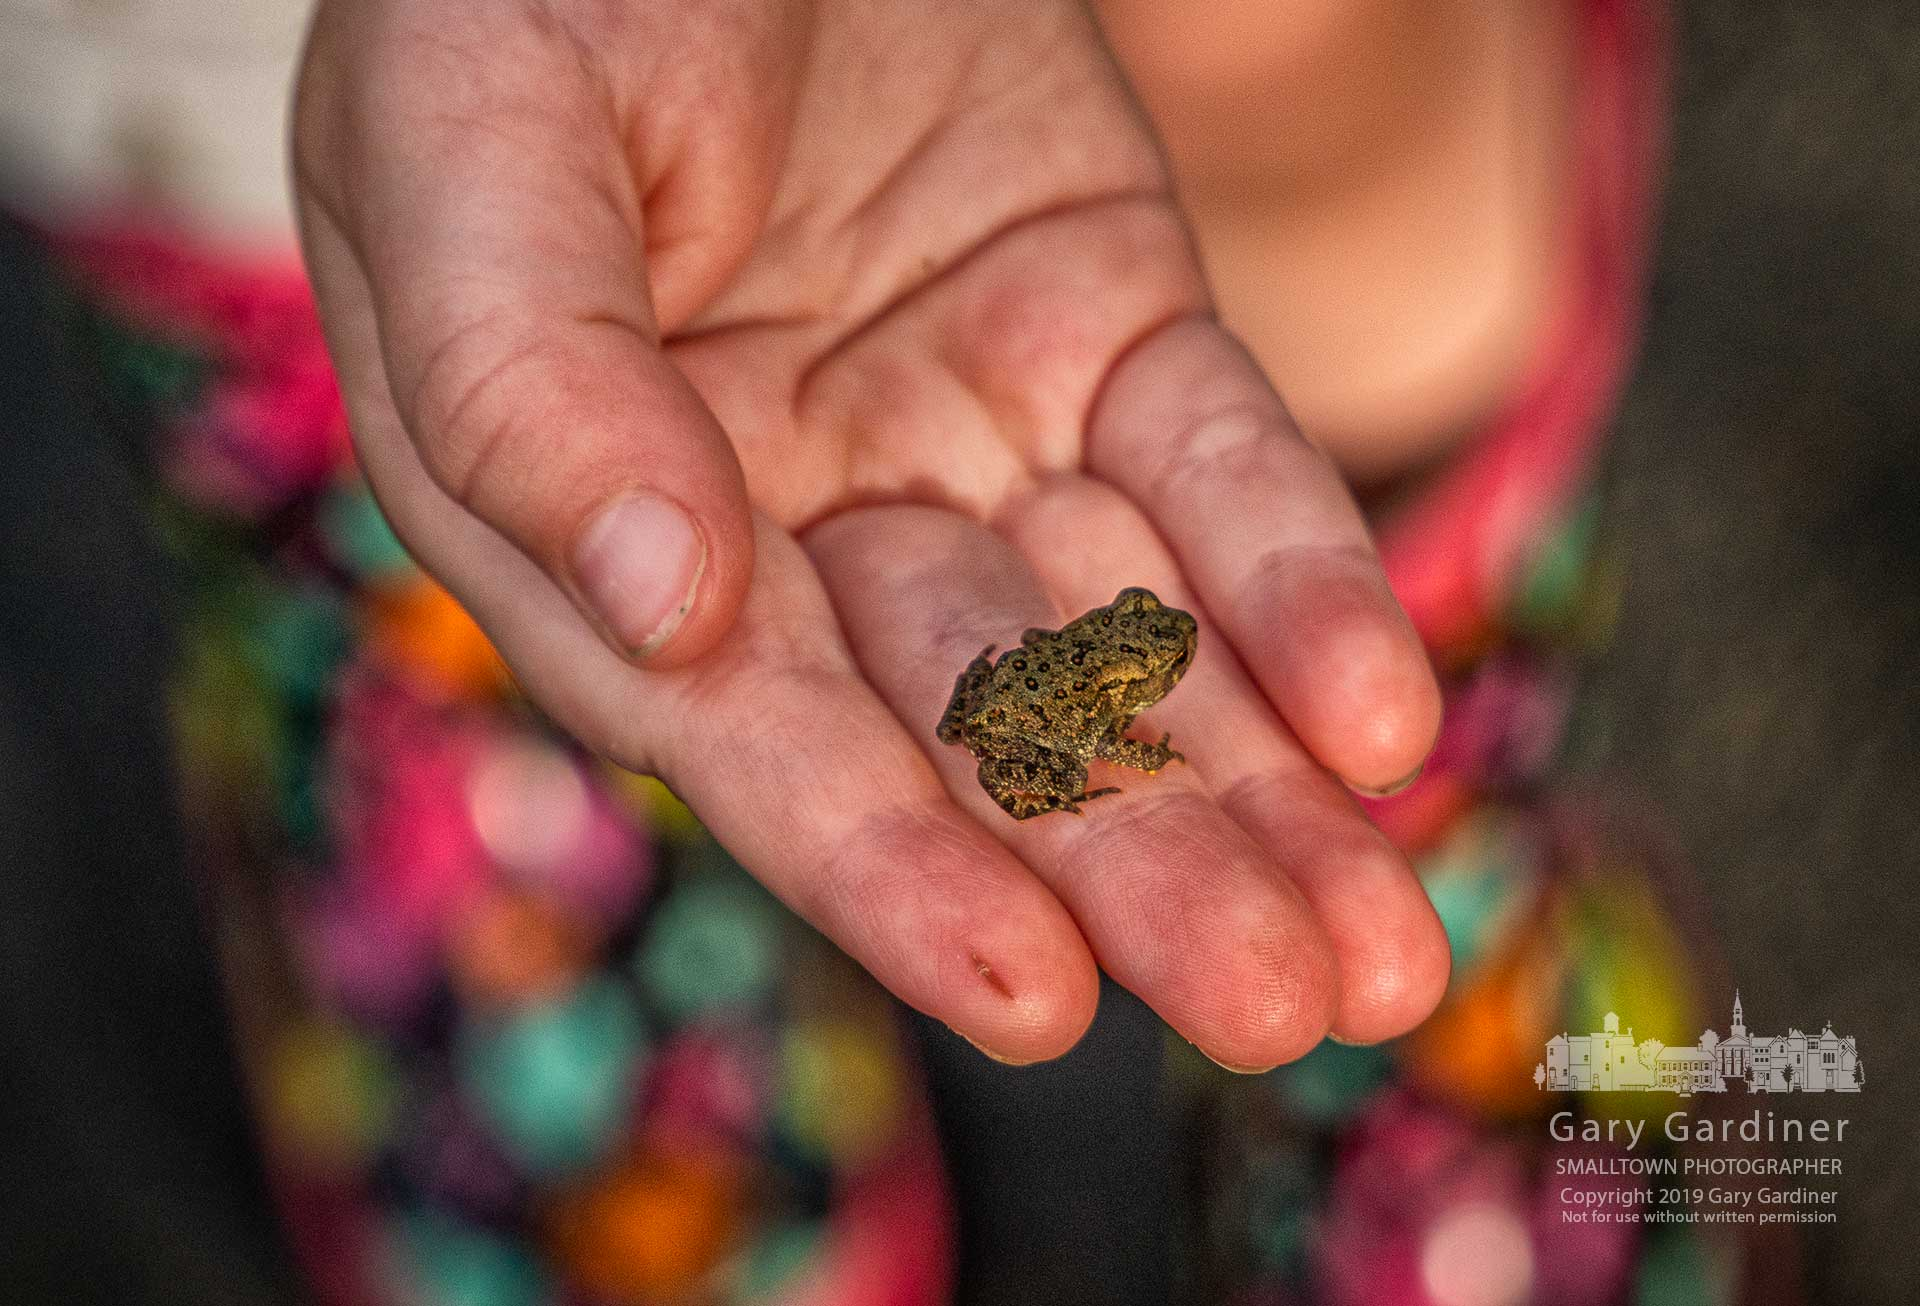 A three-year-old girl holds a juvenile toad found along the trail at the wetlands in Highlands Park Sunday afternoon. My Final Photo for June 16, 2019.